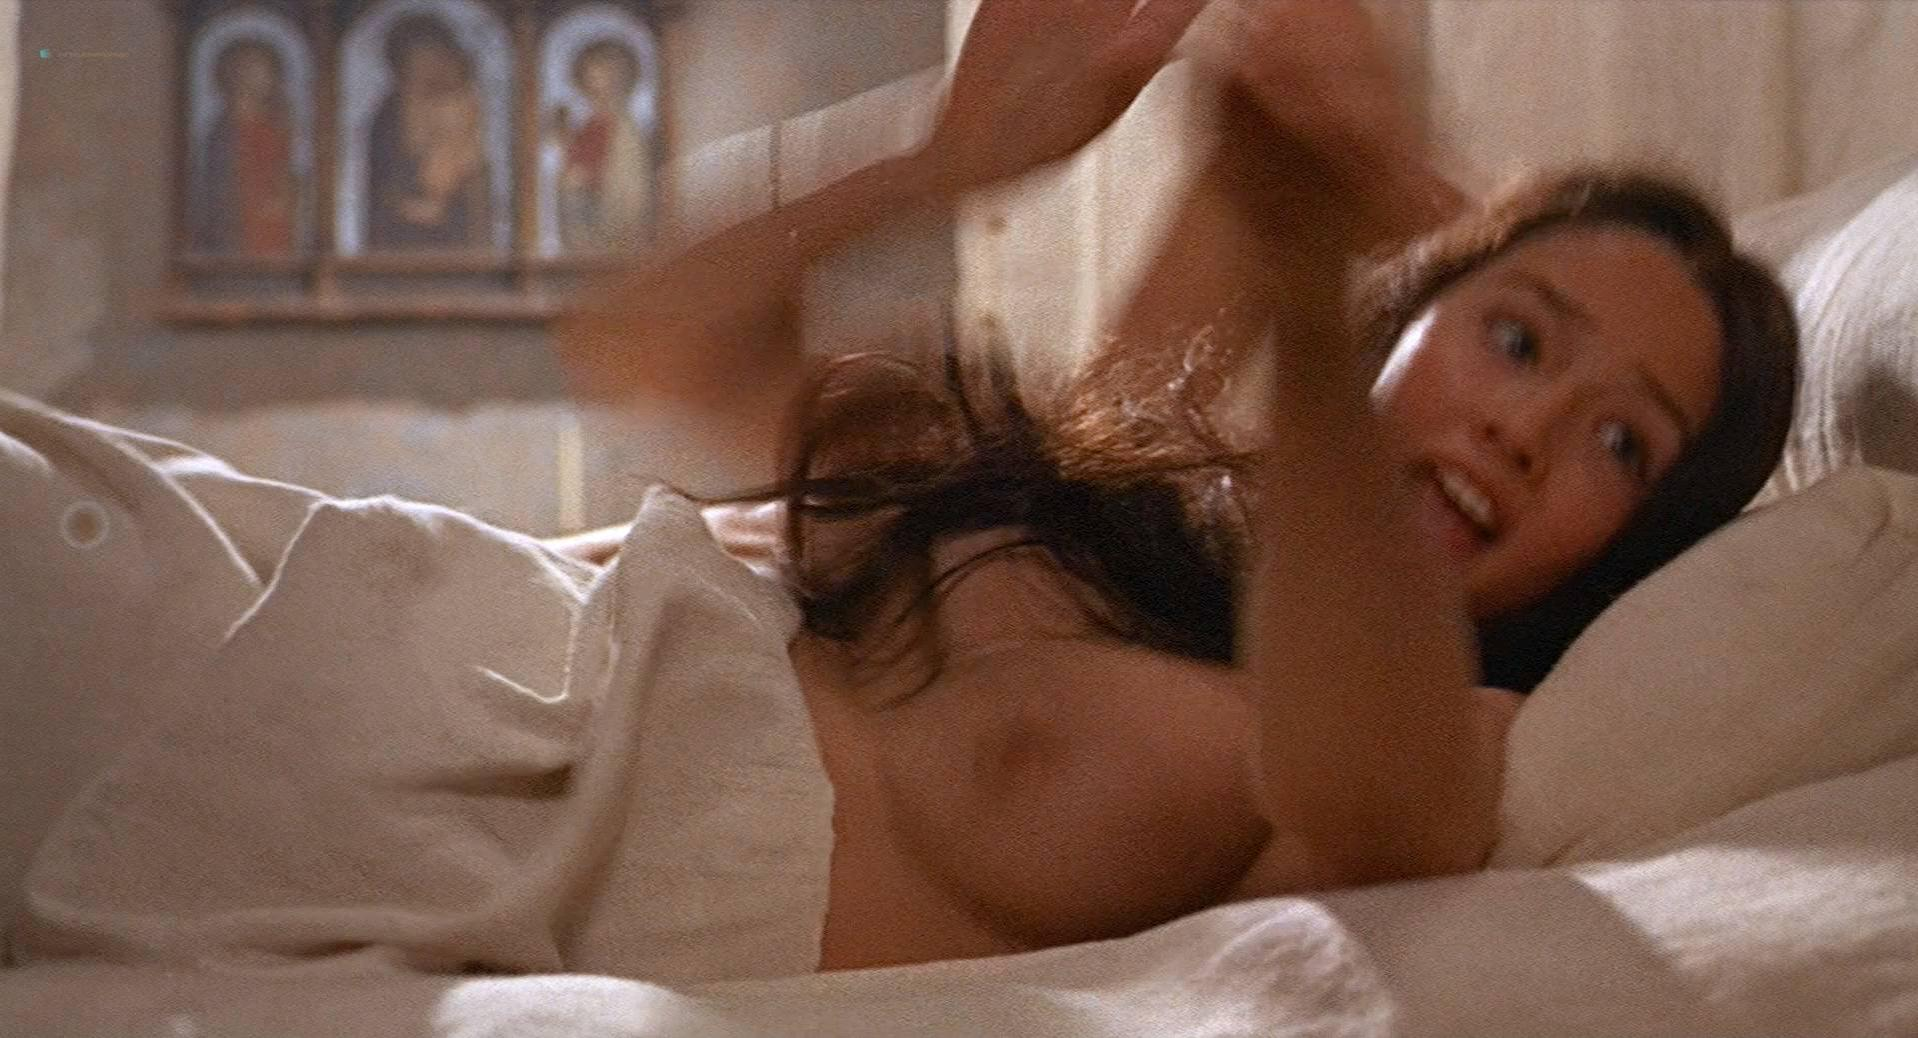 Romeo and juliet movie 1968 sex scene